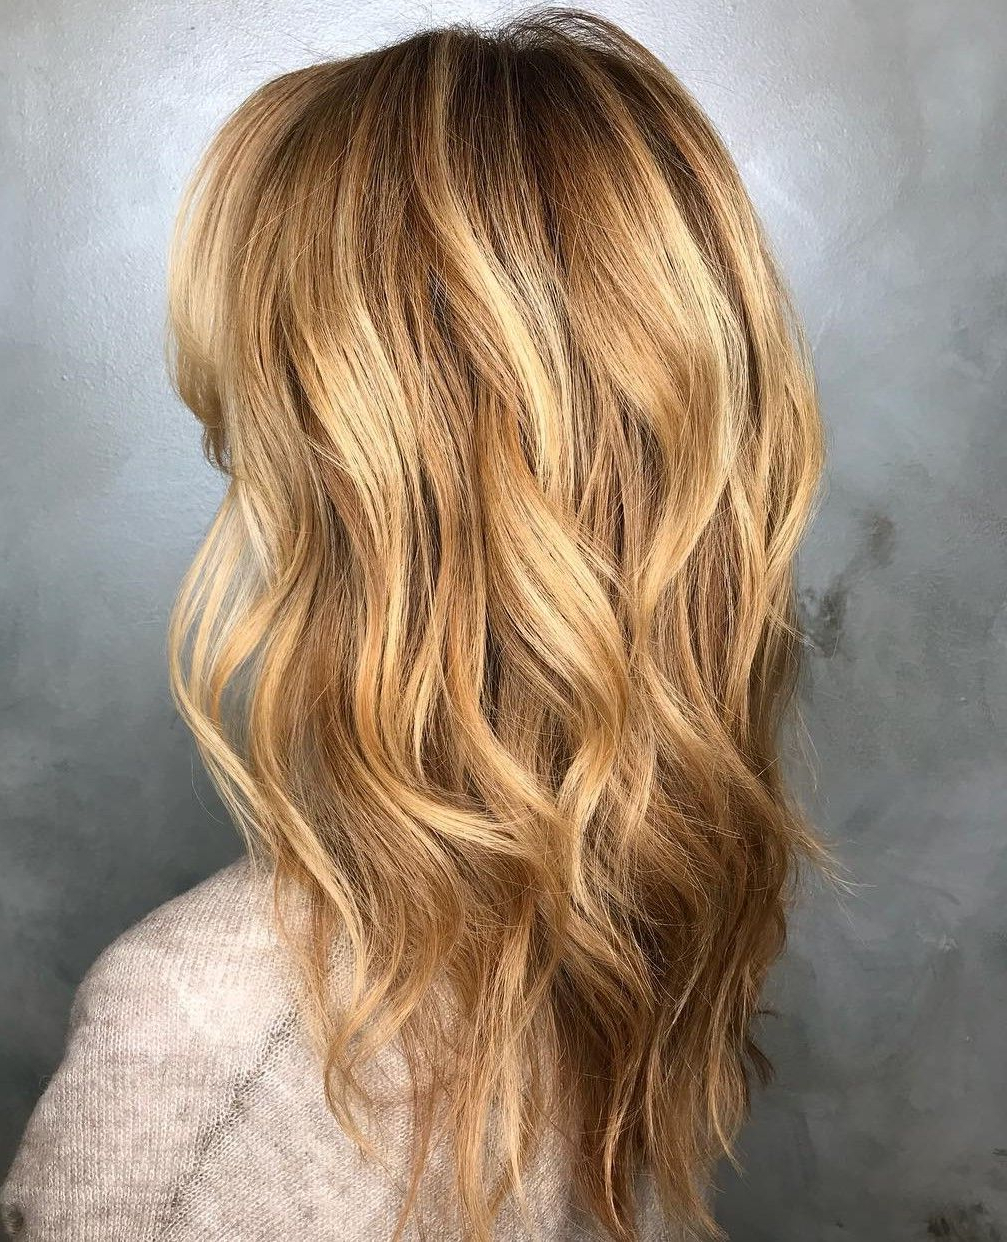 Most Recently Released Longer Tousled Caramel Blonde Shag Haircuts For Pin On Hair Ideas (View 5 of 20)